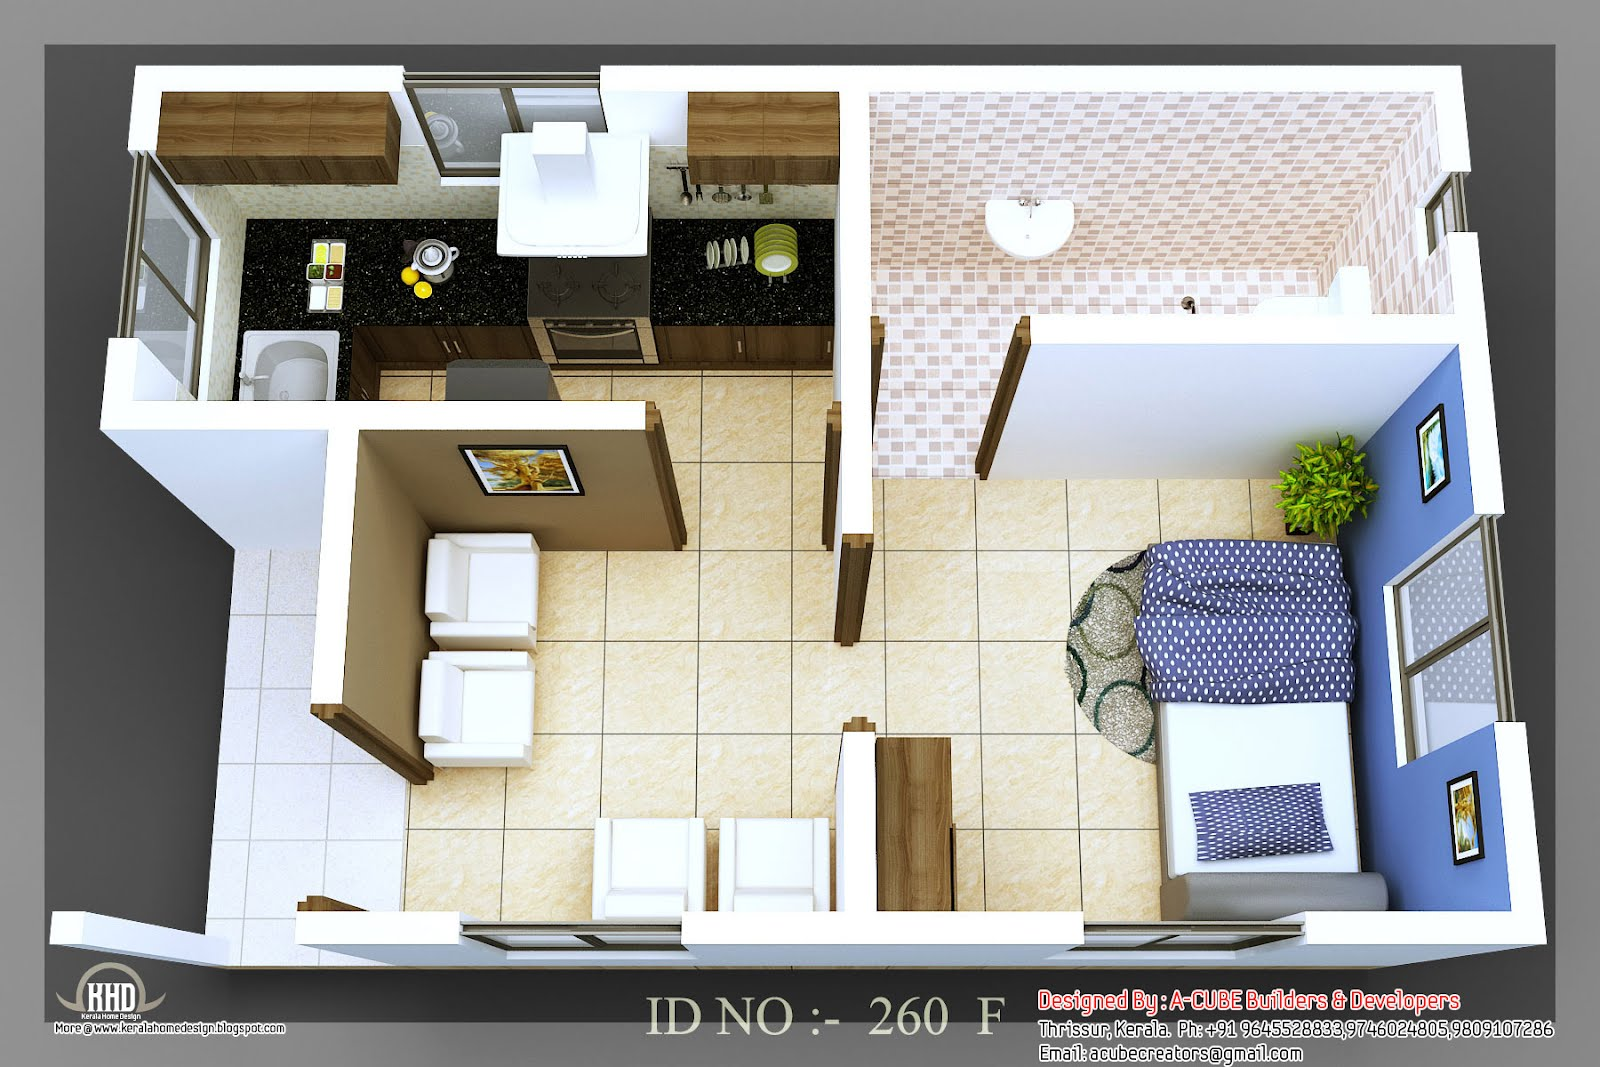 3d isometric views of small house plans home appliance for Small house blueprints free